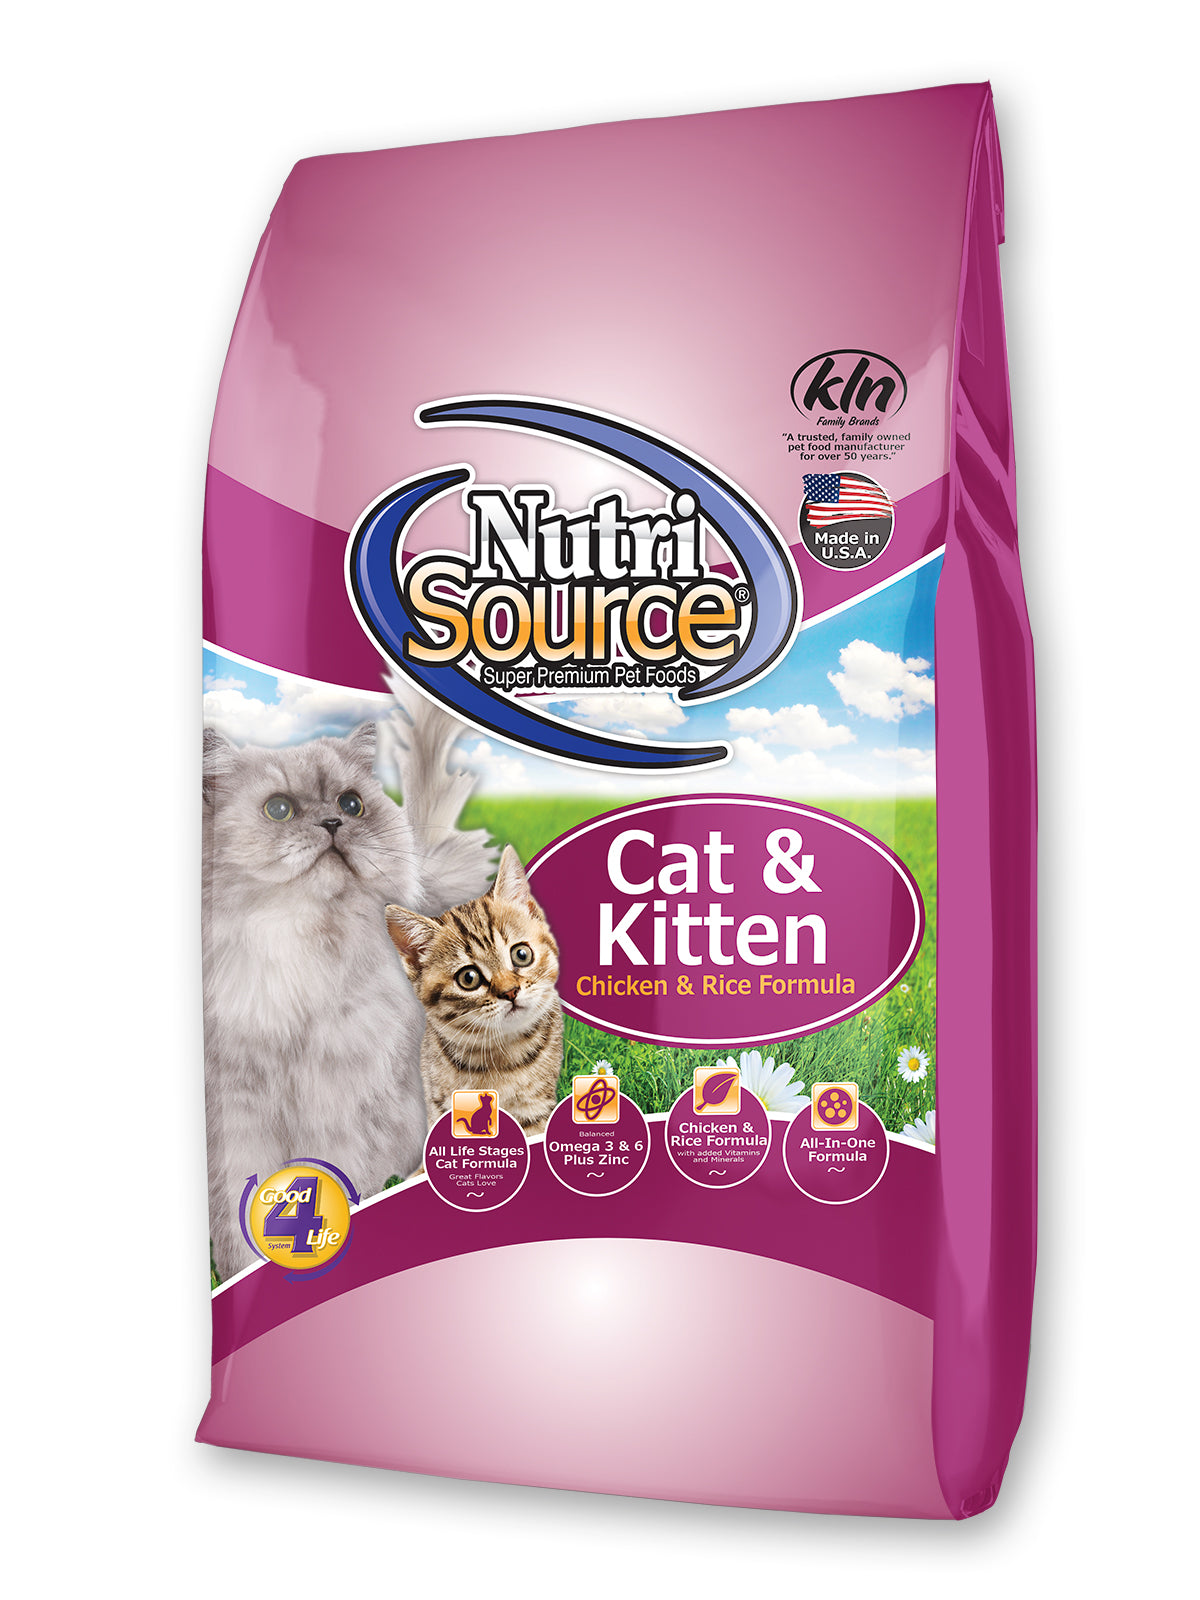 Nutrisource Chicken & Rice Dry Cat & Kitten Food at NJPetSupply.com